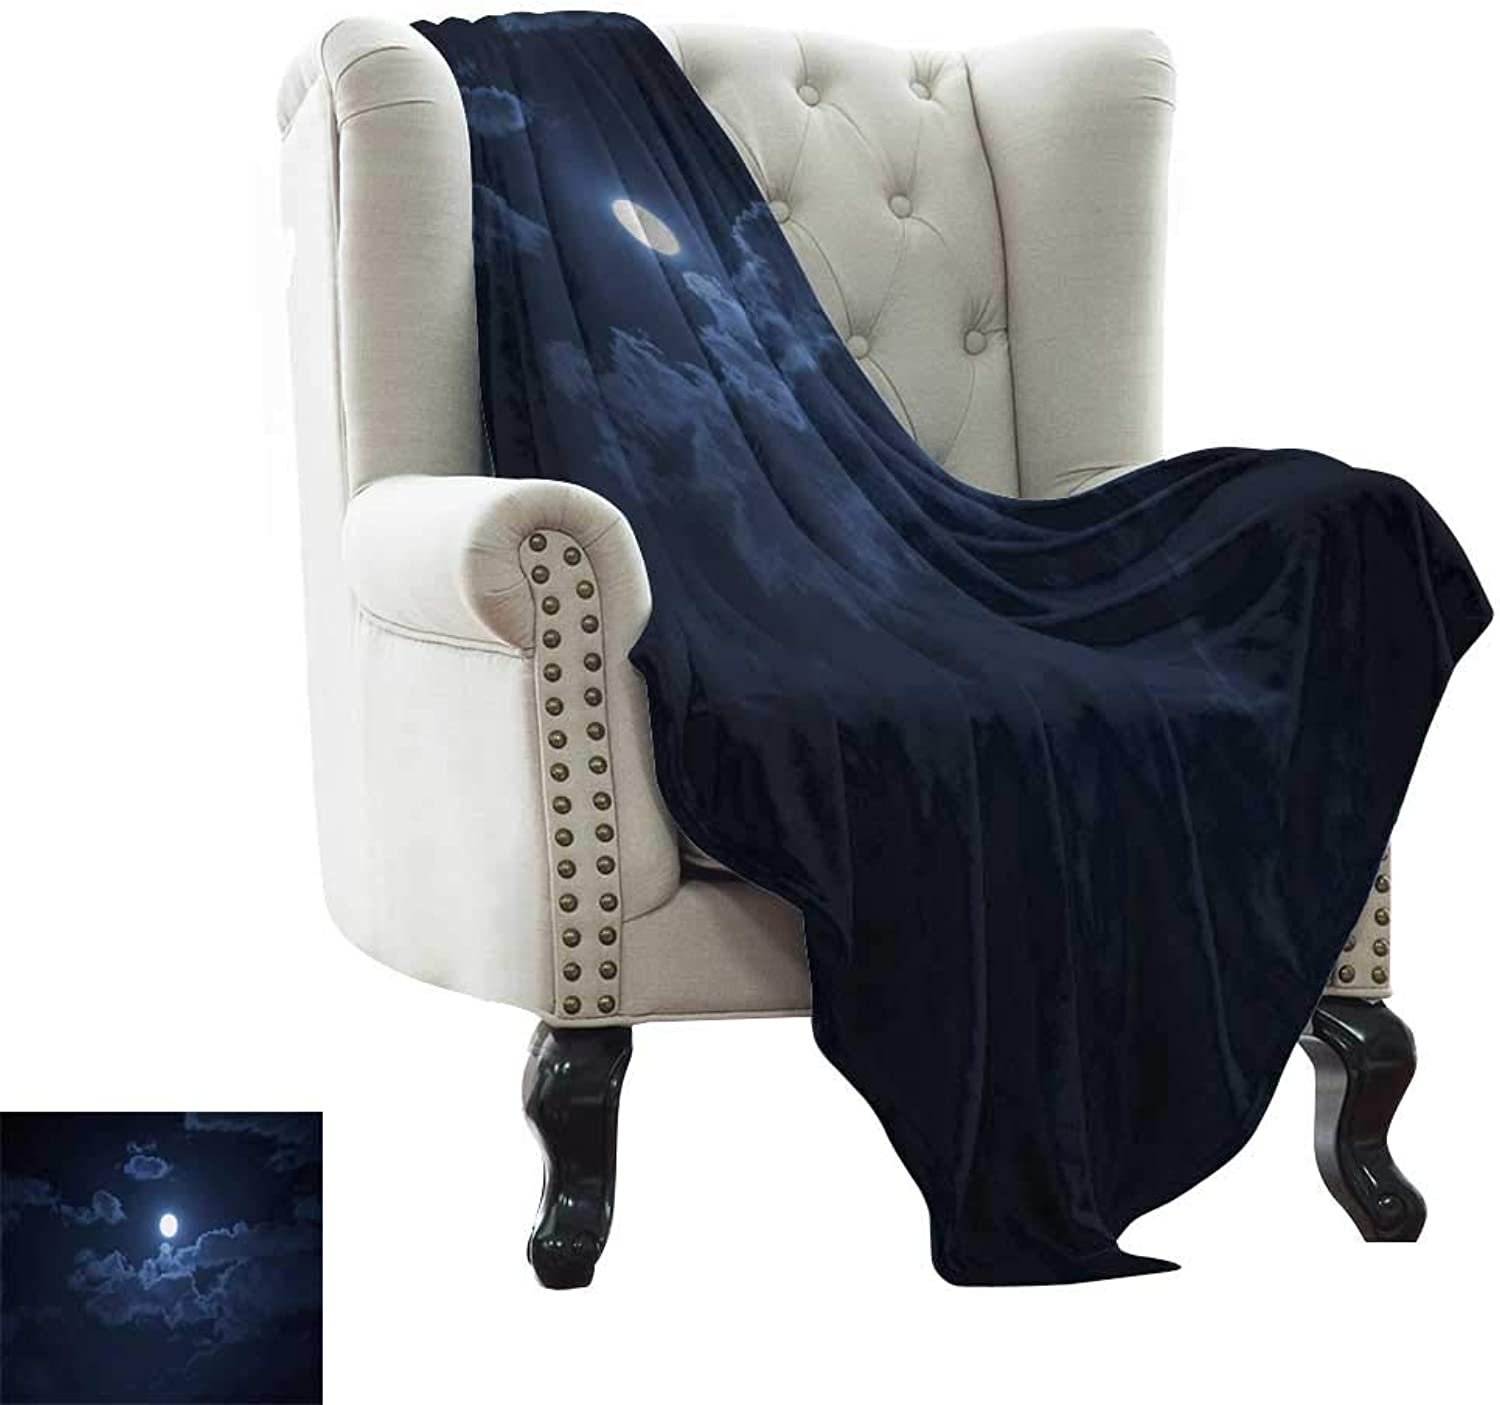 Weighted Blanket for Kids Night,Full Moon Appearing Among Dark Clouds Scenic Mysterious Midnight Dusk Foggy Heavens,Dark bluee All Season Light Weight Living Room Bedroom 50 x60